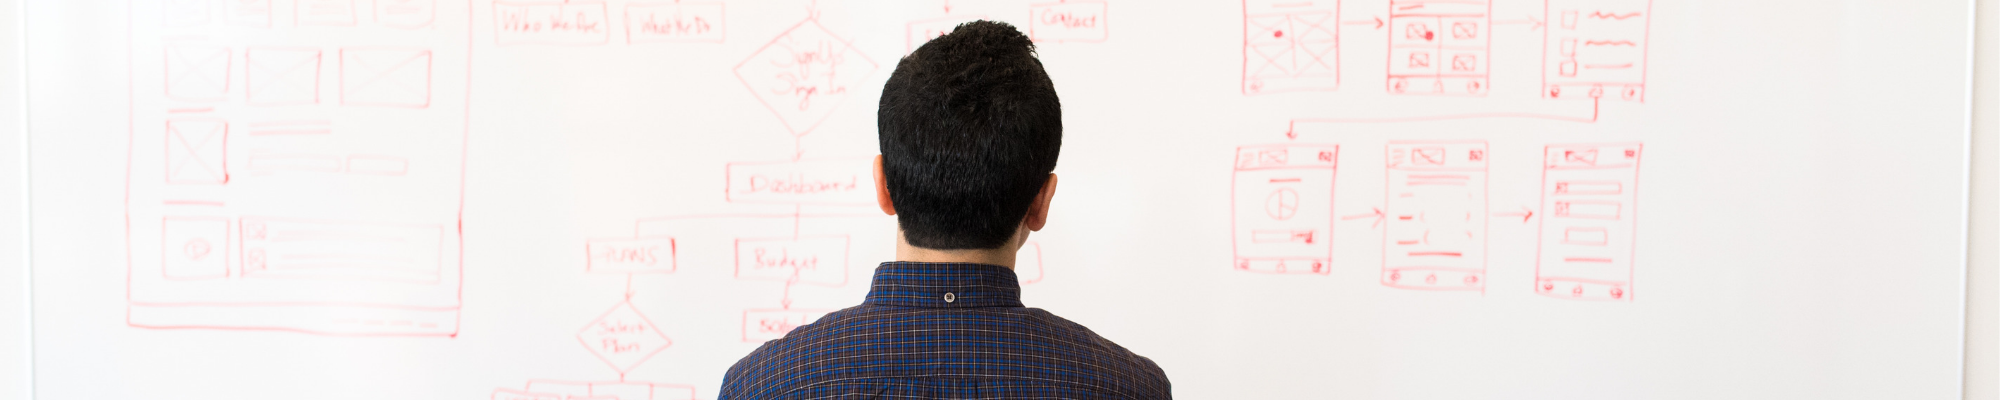 man in front of whiteboard